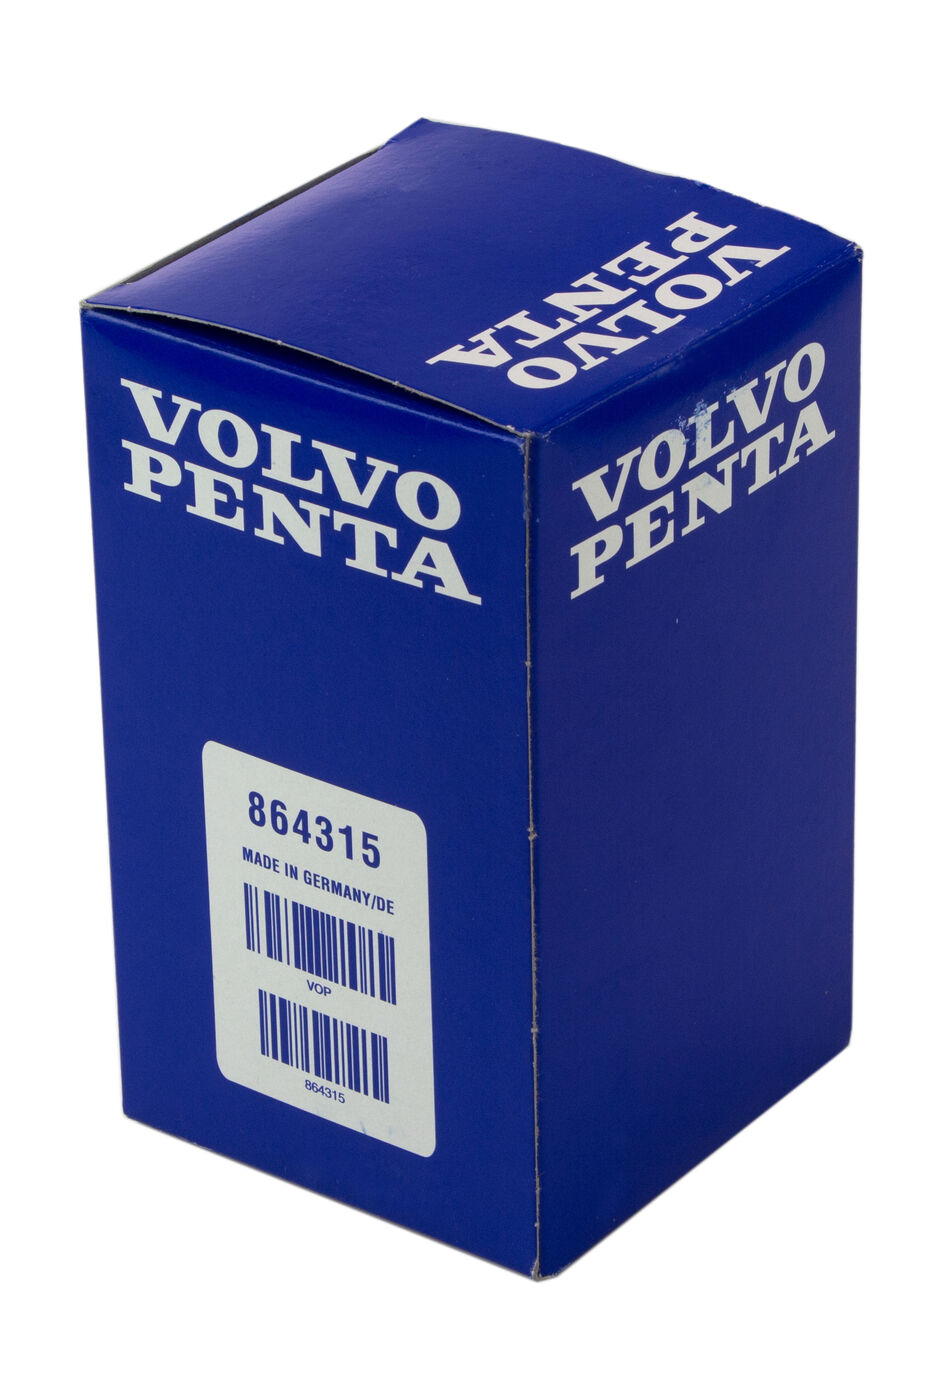 Fuel Filter For Volvo Penta Barcode 864315 Buy Now F25 Boat Location Item Code Product Description Characteristics 1